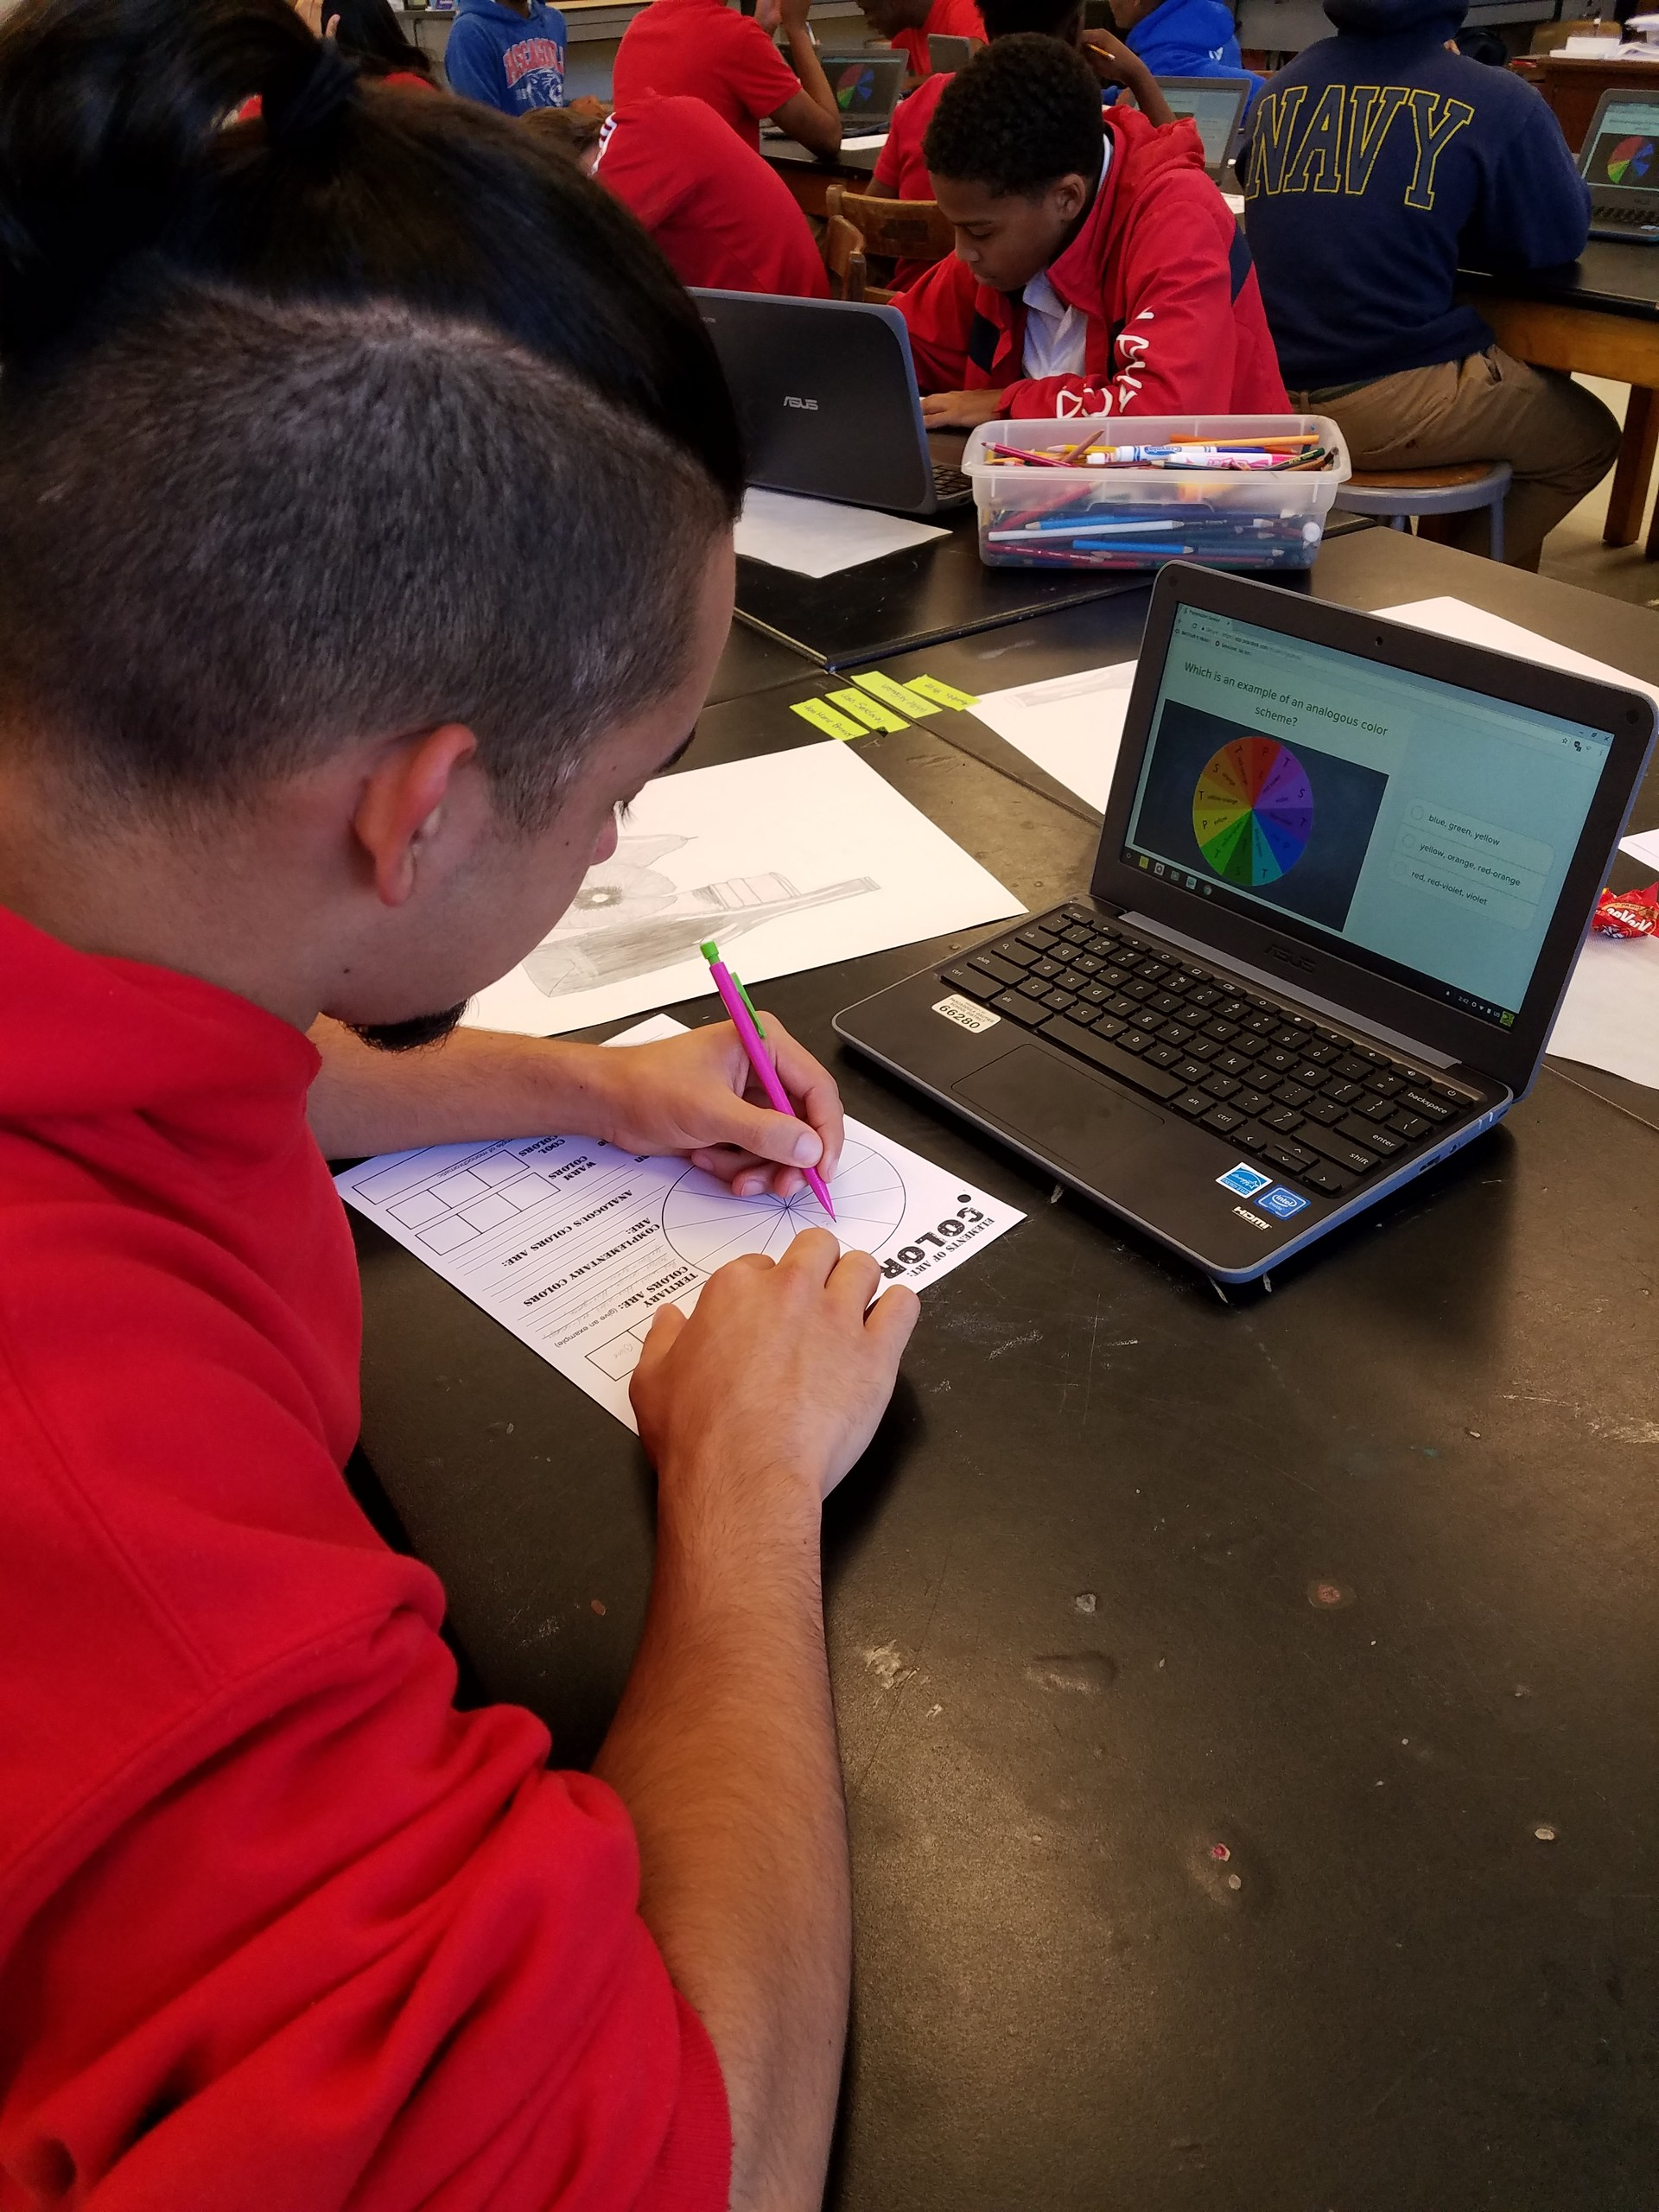 Student is using a chromebook to take notes on color